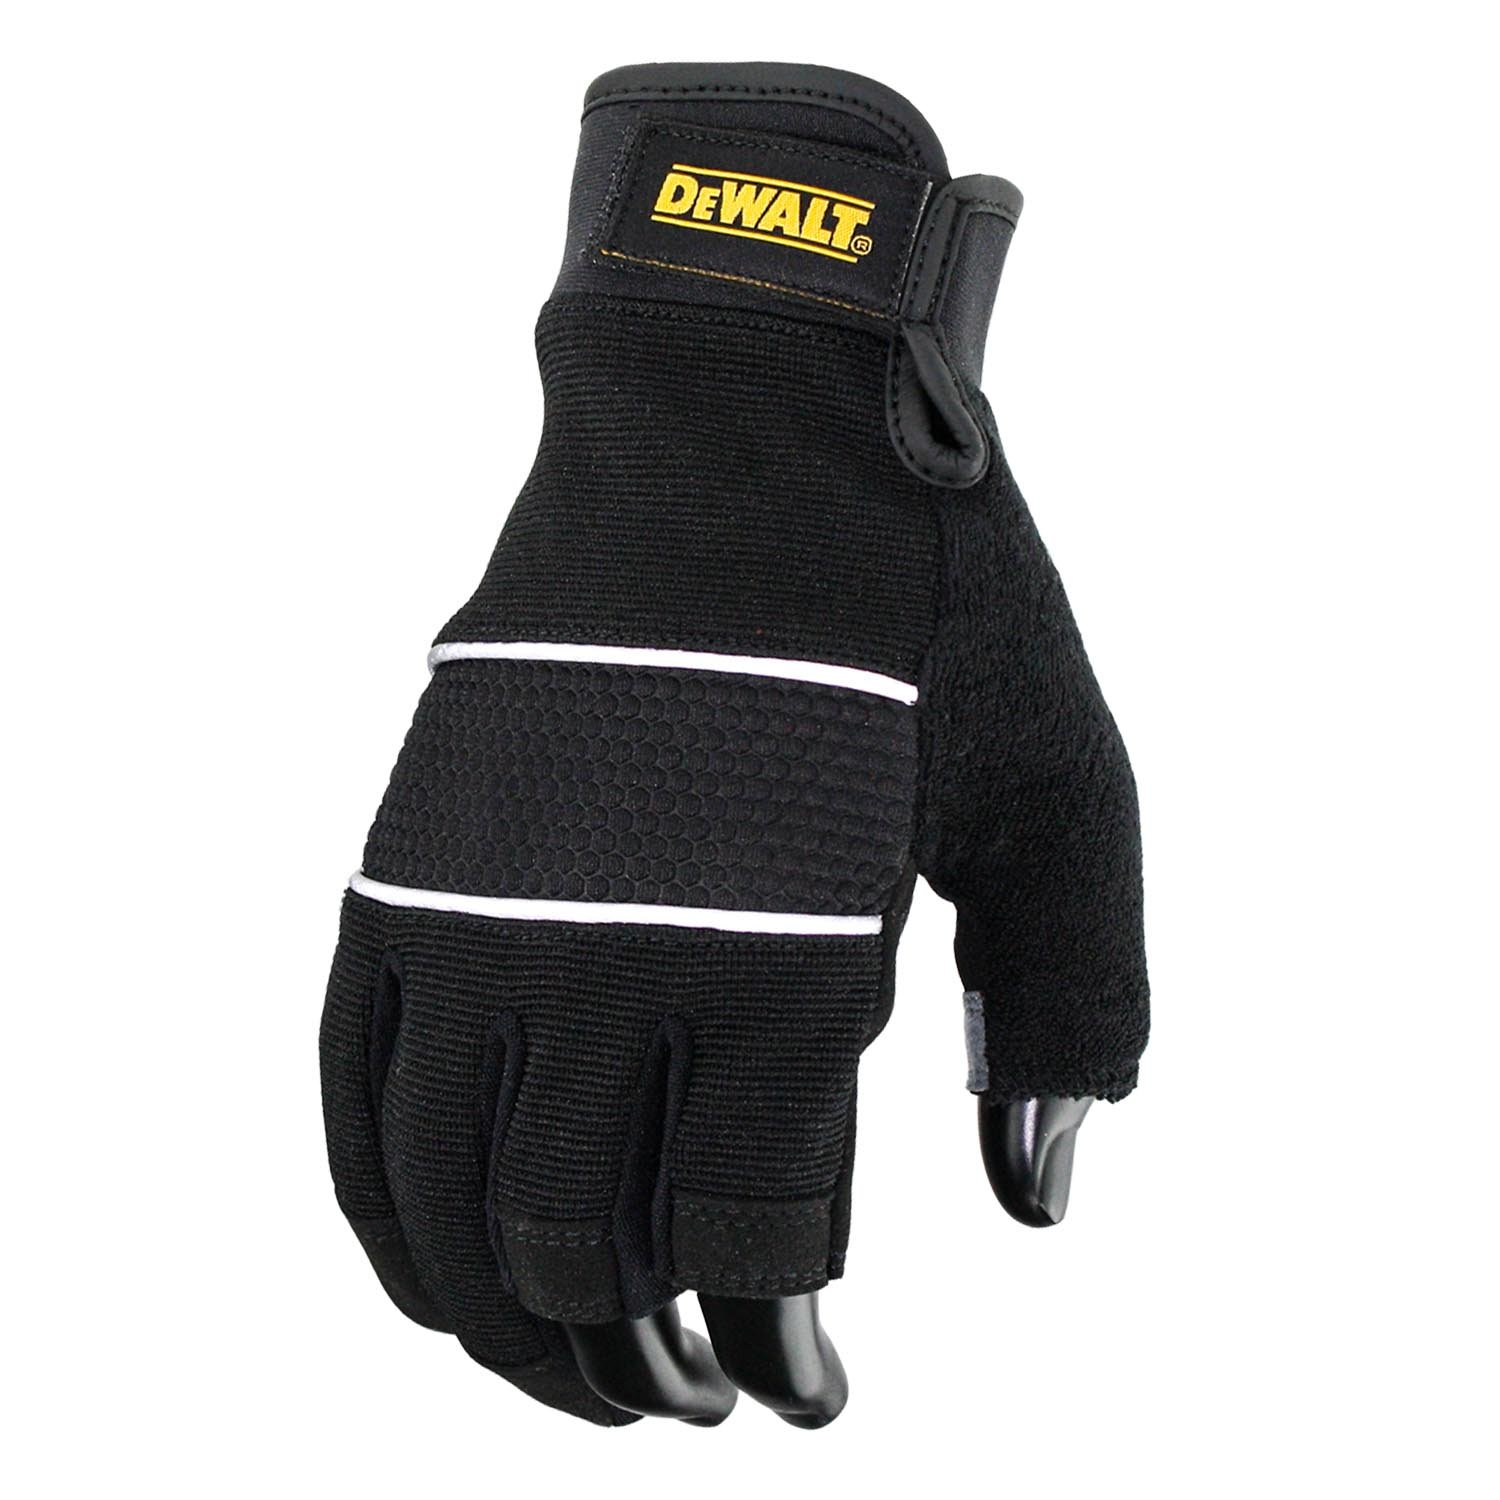 DEWALT DPG214L Framer Performance Glove (L), Black, L